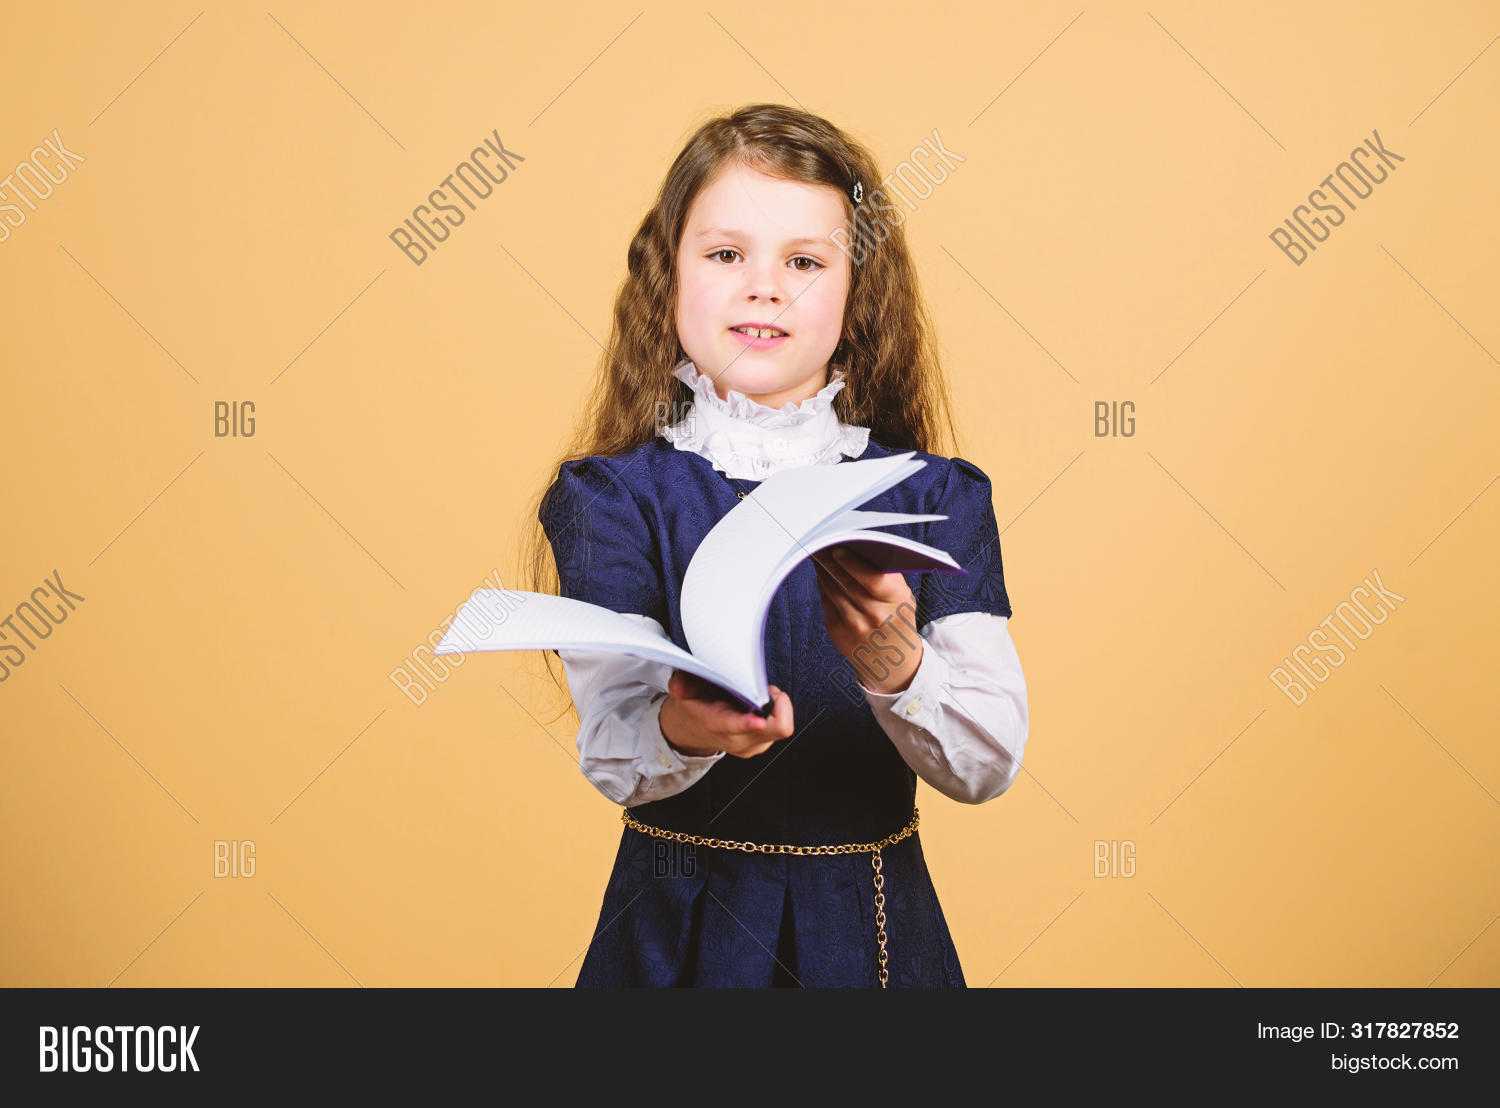 Basic Knowledge. Back To School. Knowledge Day. Serious About Studying. Schoolgirl Adorable Child. C